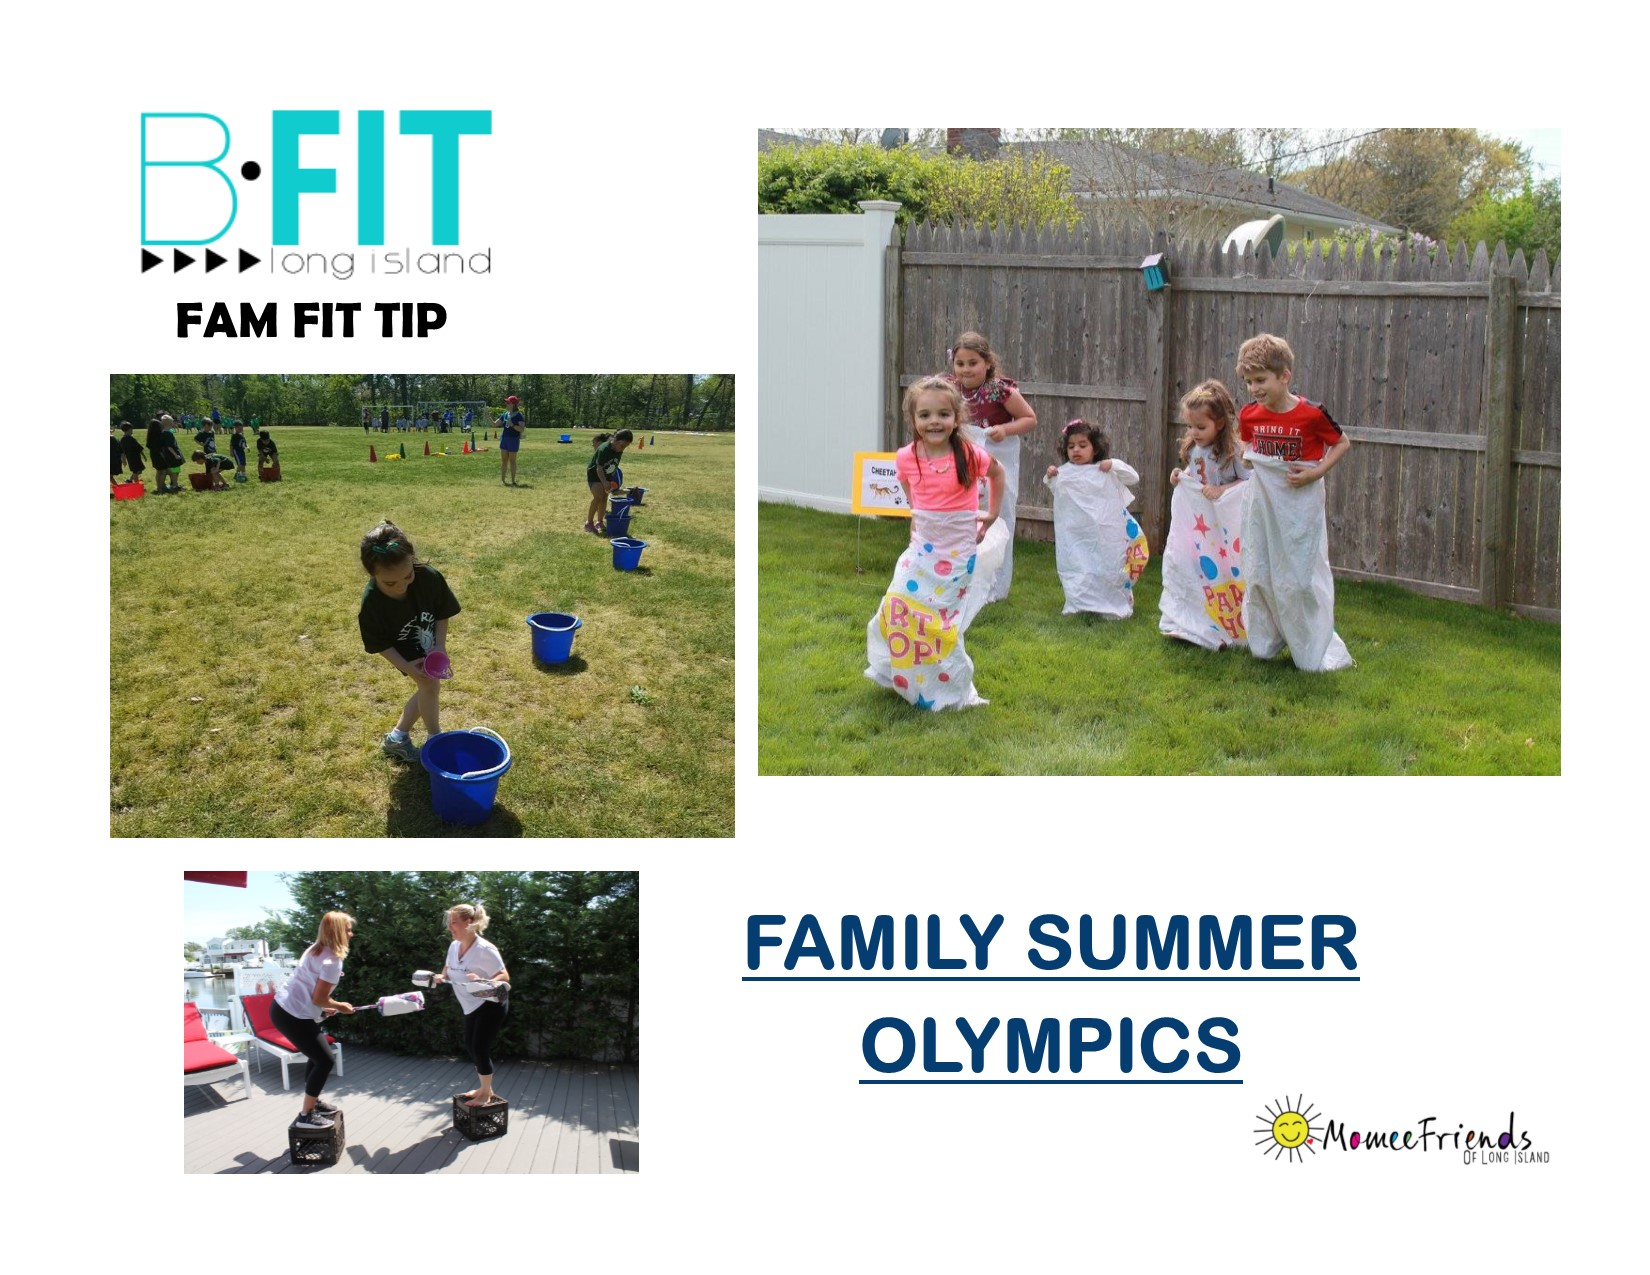 Family summer olympics momeefriendsli it is summer and a great time to head outdoors and get active with your family solutioingenieria Choice Image